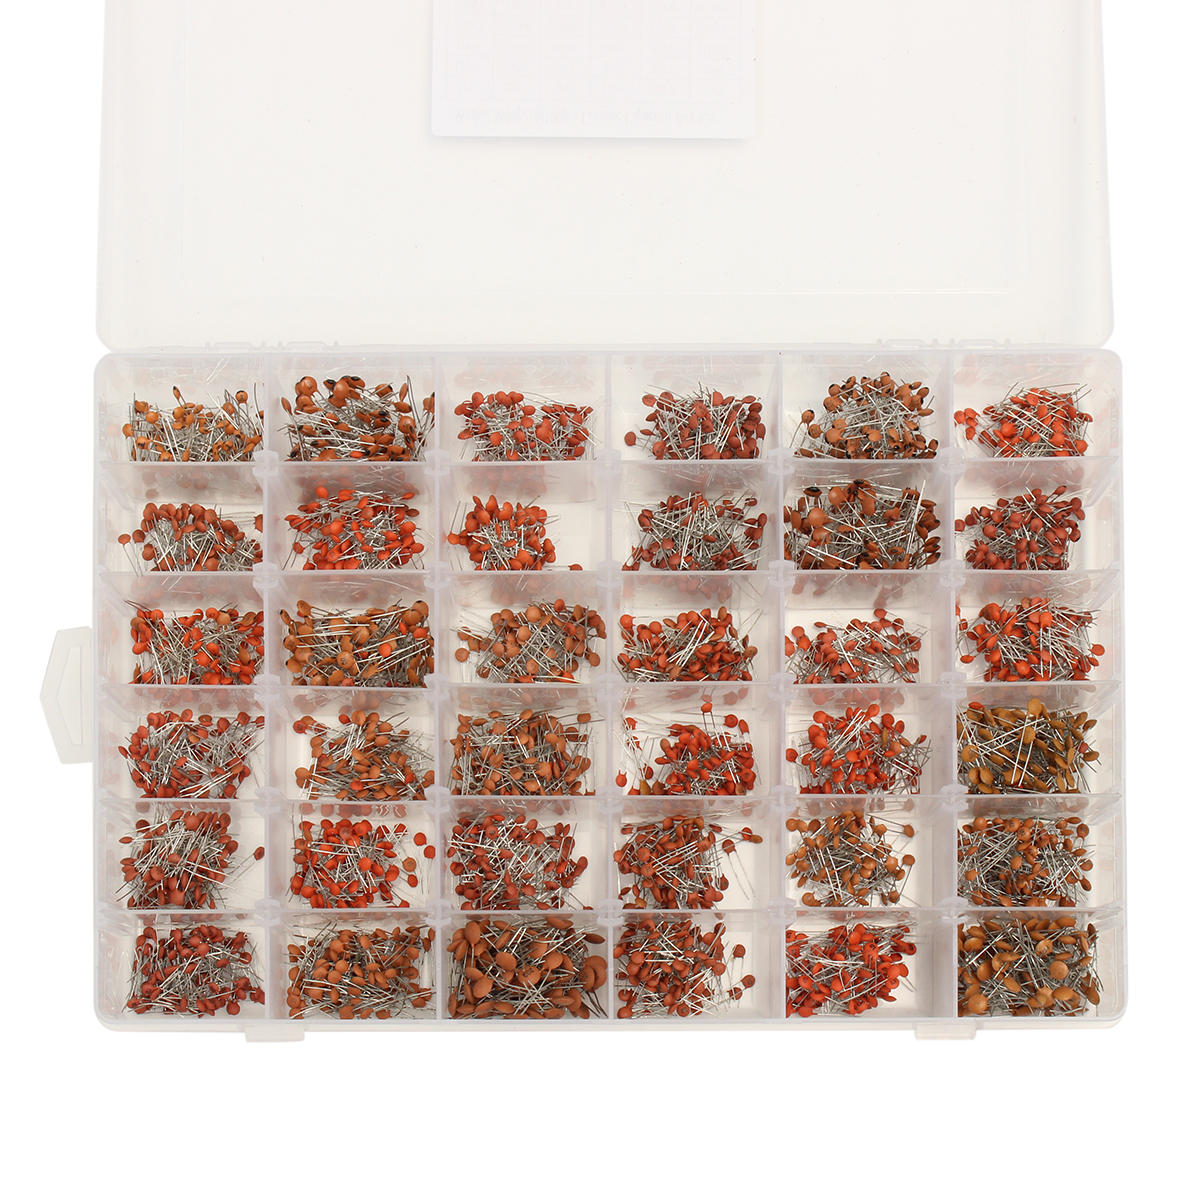 3600pcs/lot 1PF-100nF Ceramic Capacitor Assortment Kit 10PF 22PF 33PF 47PF 100PF 330PF 470PF 1NF 10NF 47NF 50V Capacitors Set